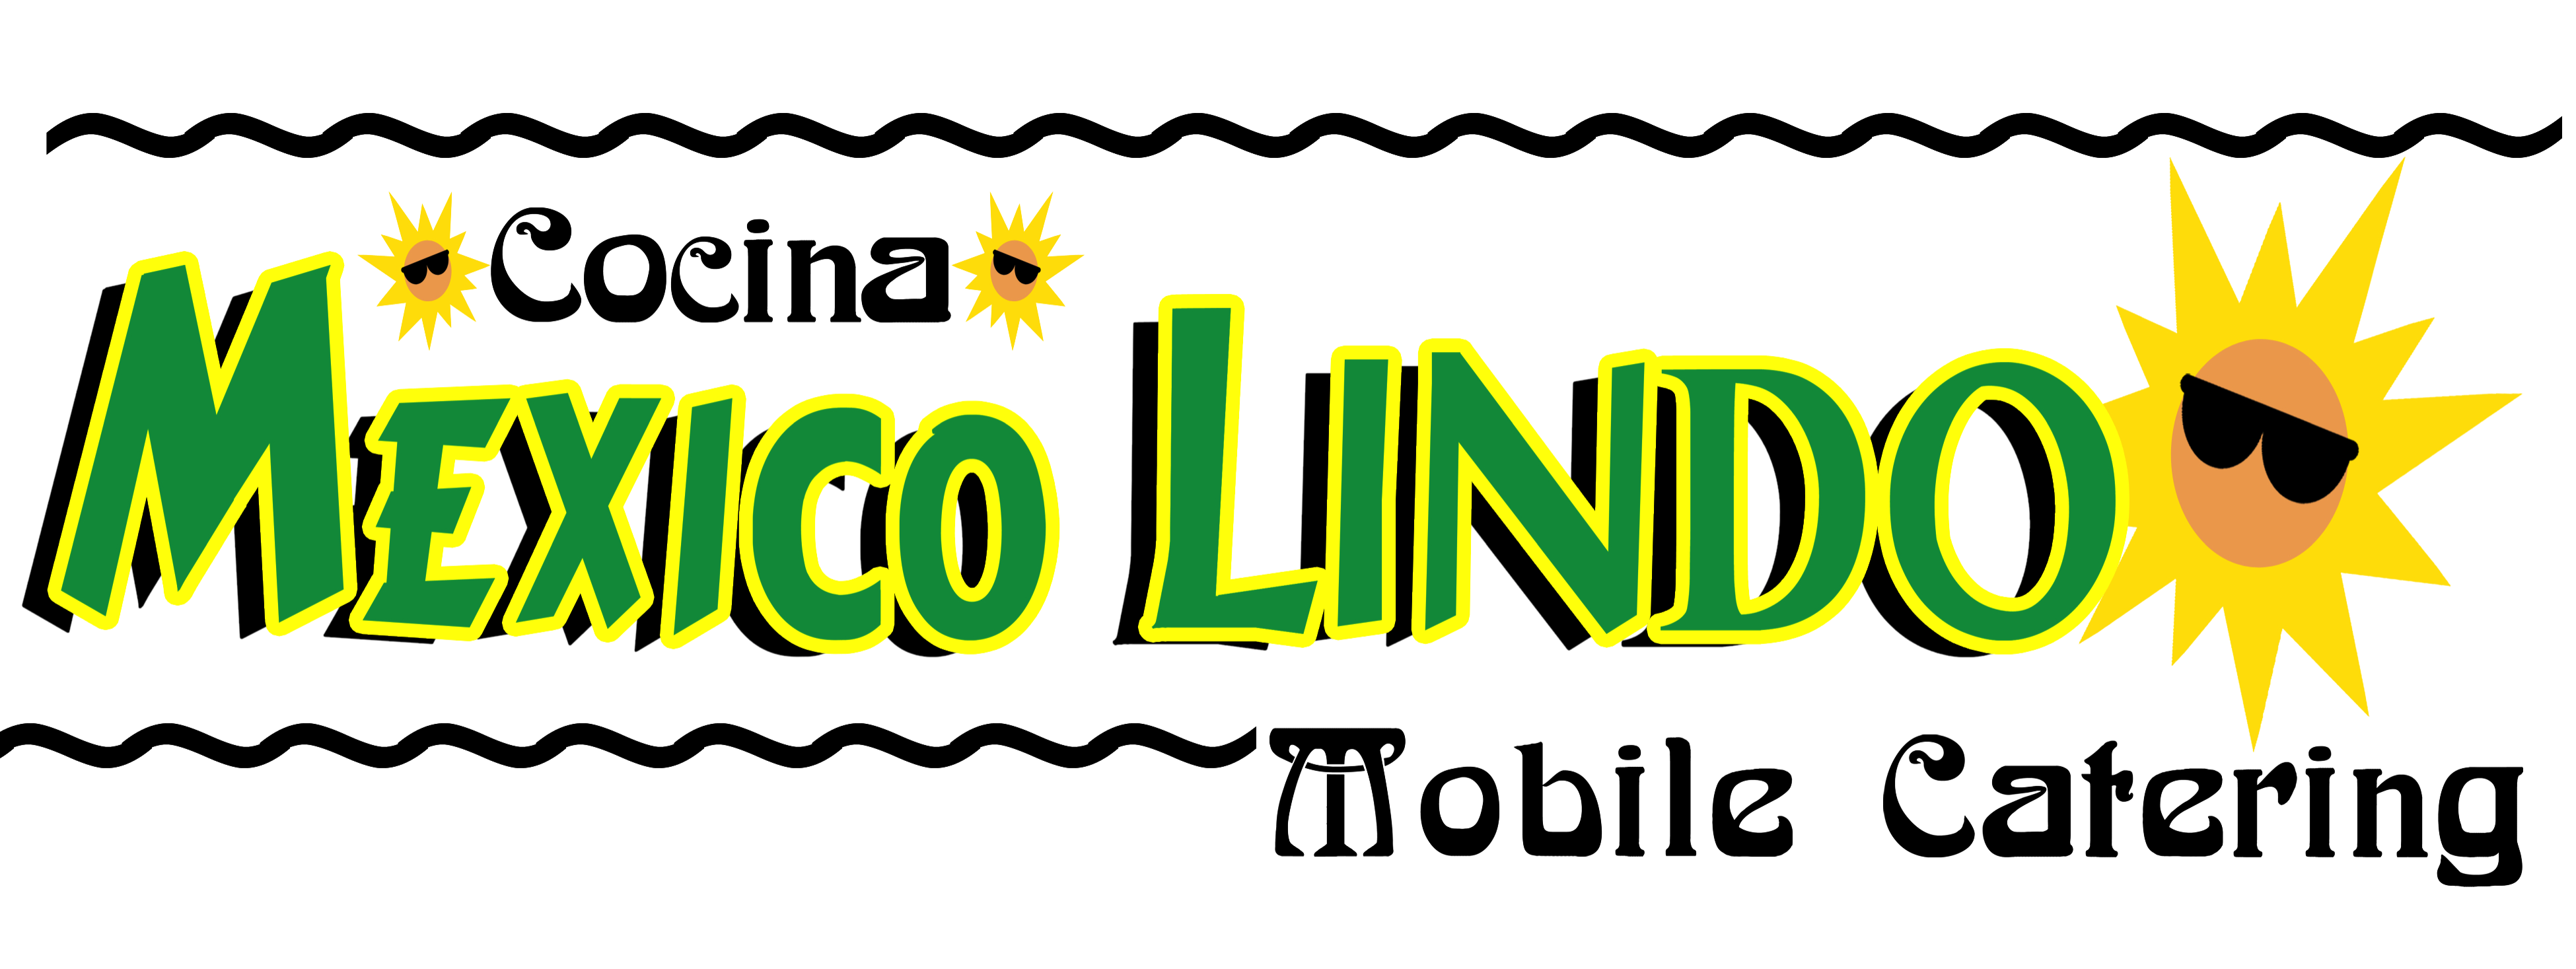 image of Mexico Lindo's logo